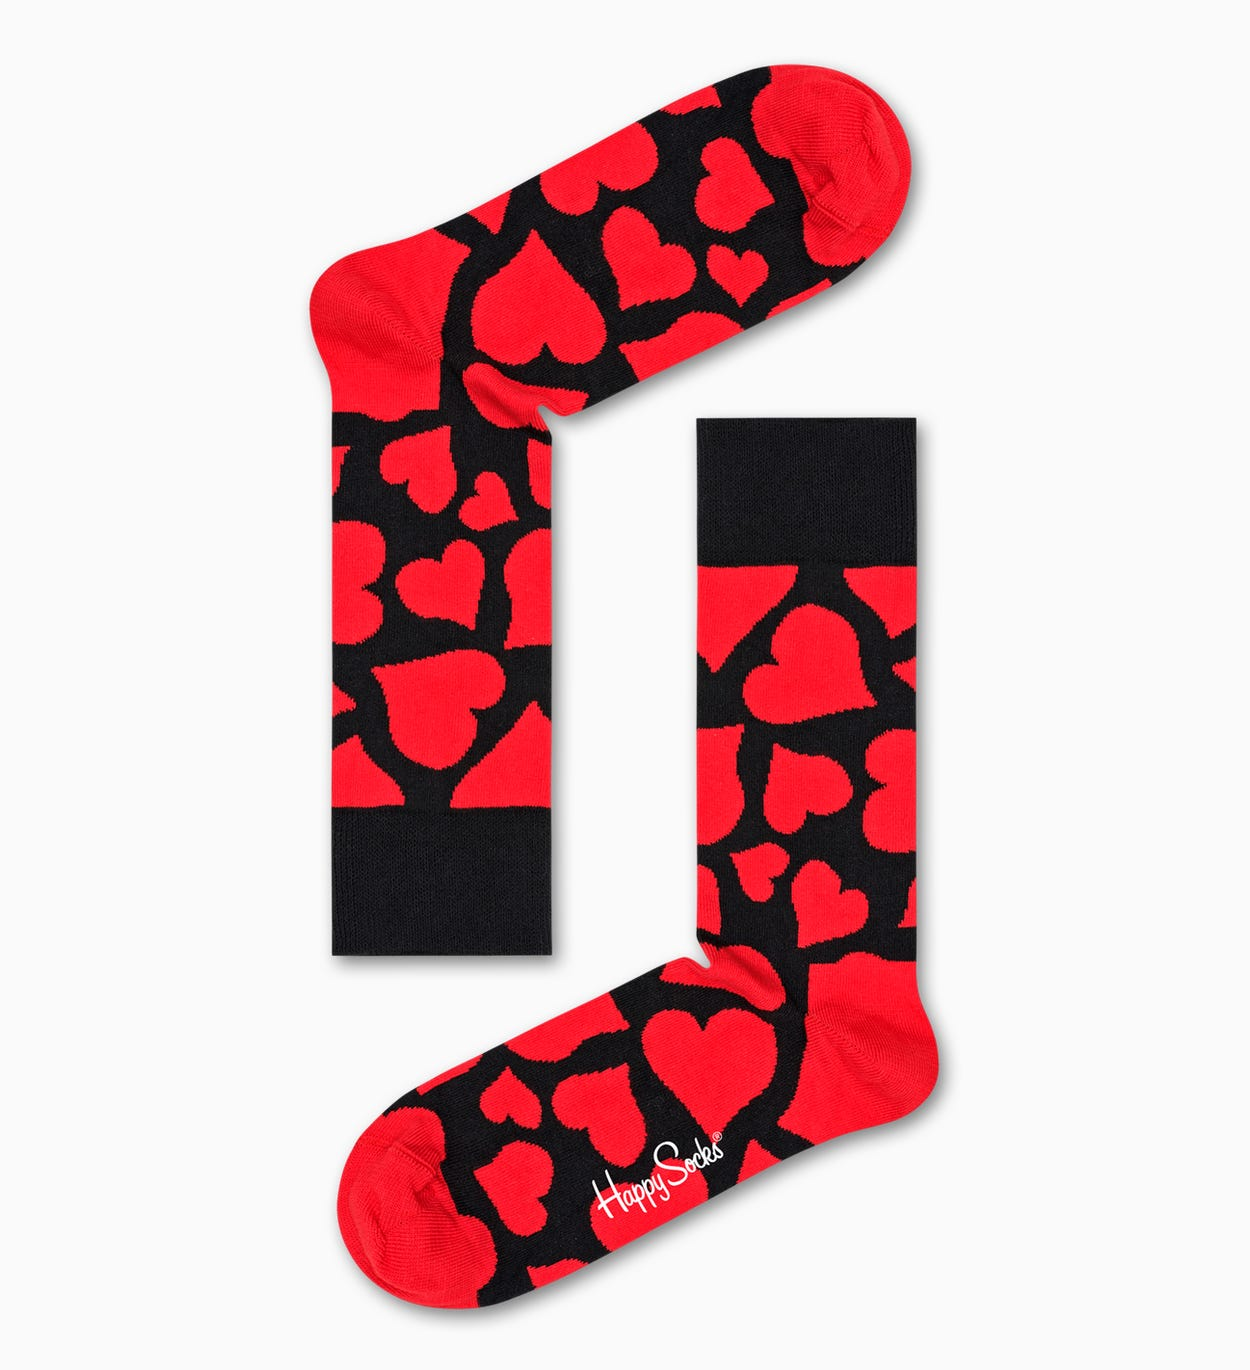 Valentine's Day Gift: Heart Gift Box 2-Pack | Happy Socks